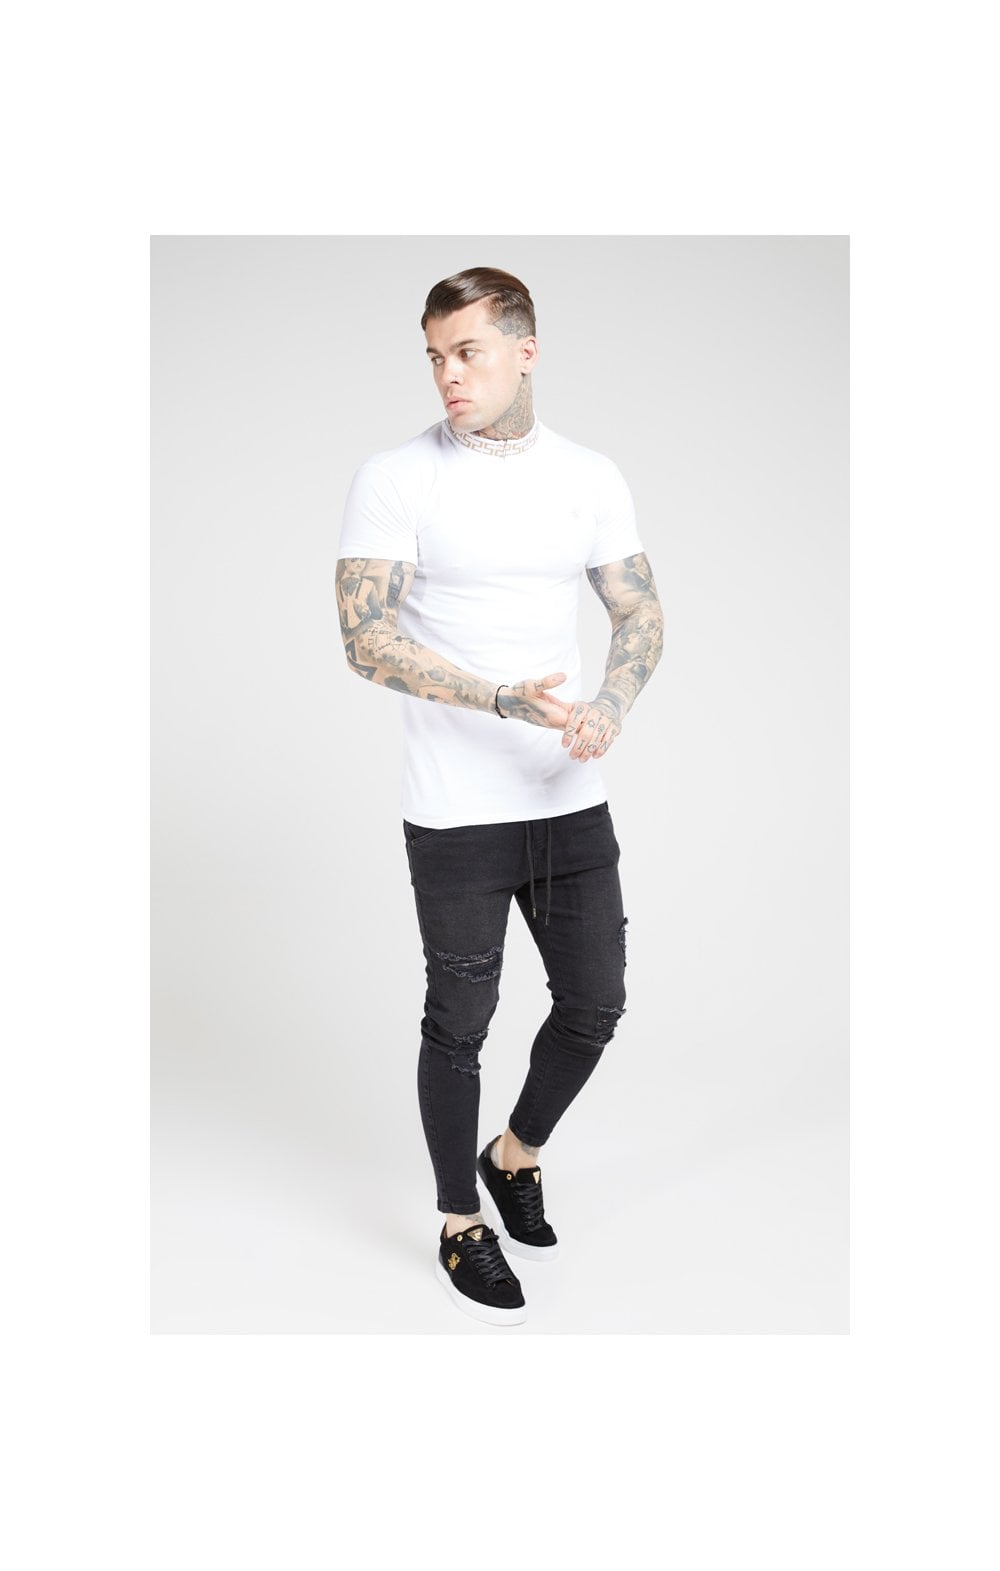 SikSilk P/E Polo Con Colletto A Costine A Catena Bianco (3)